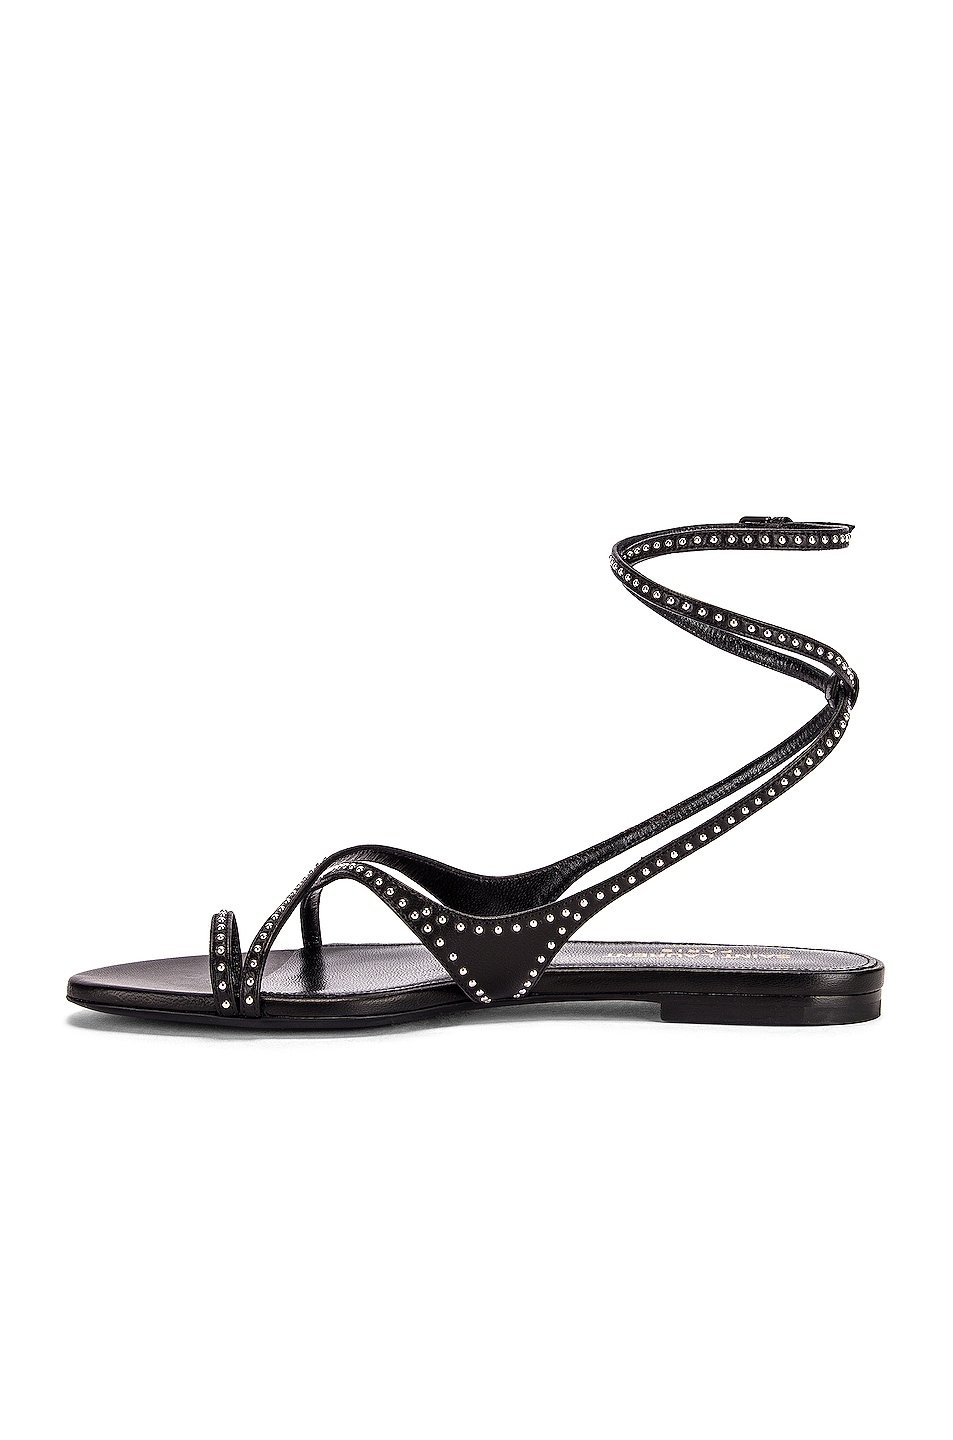 Image 5 of Saint Laurent Gia Ankle Sandals in Black